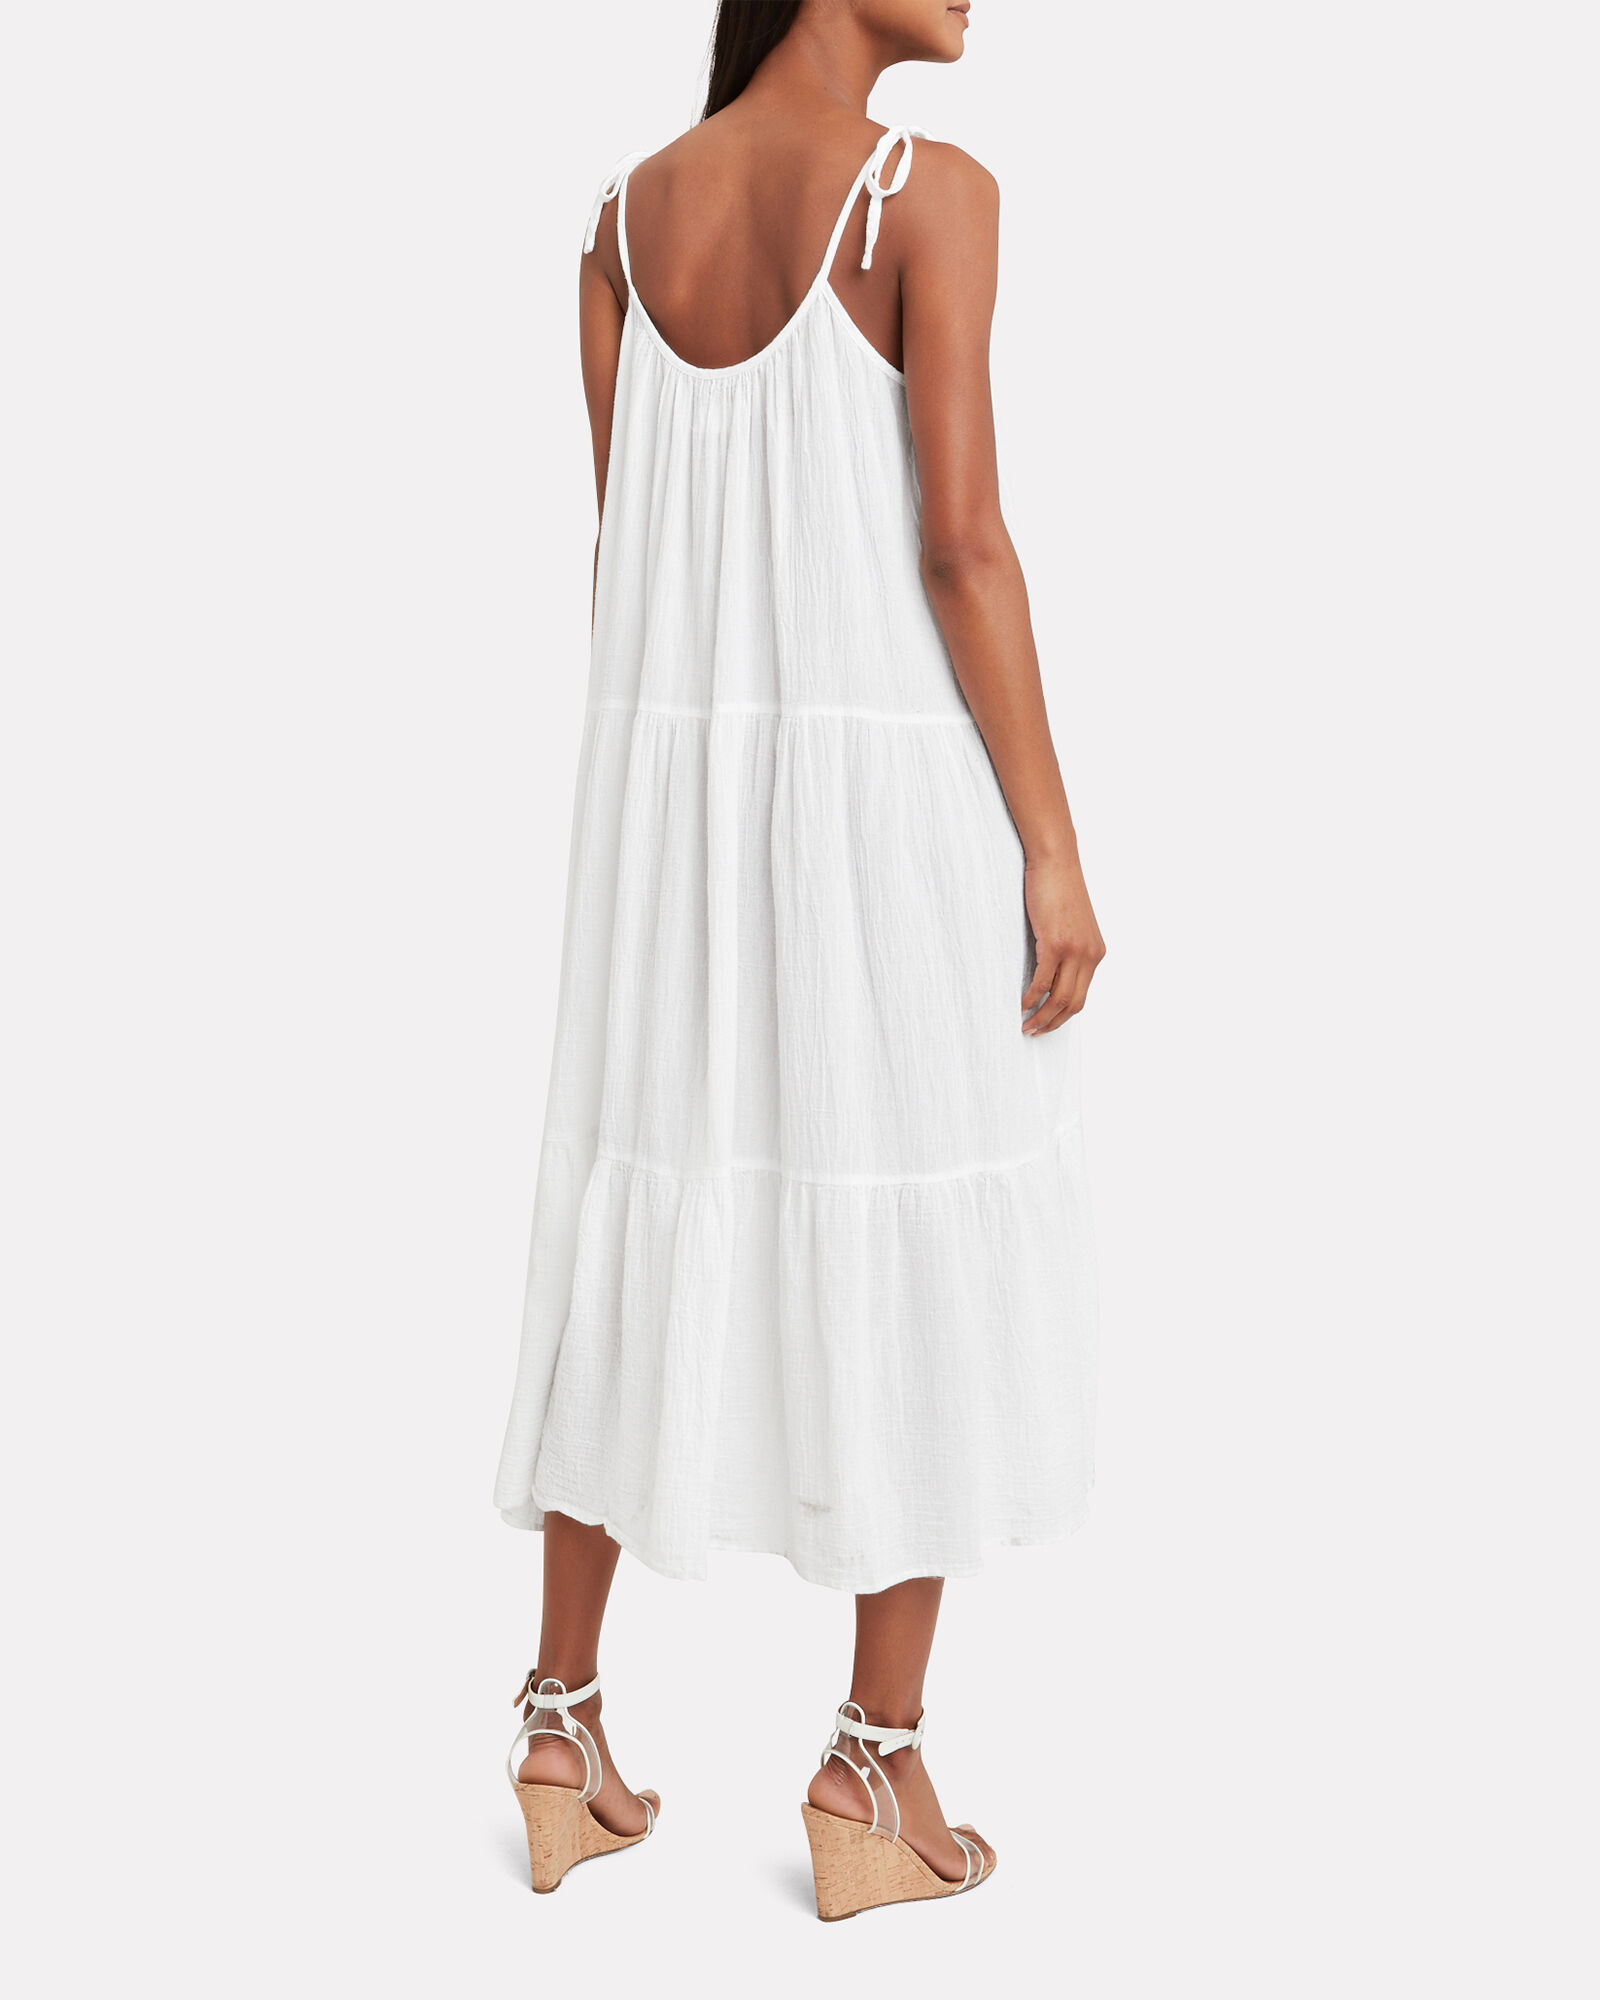 Daisy Tiered Tie Strap Dress, WHITE, hi-res